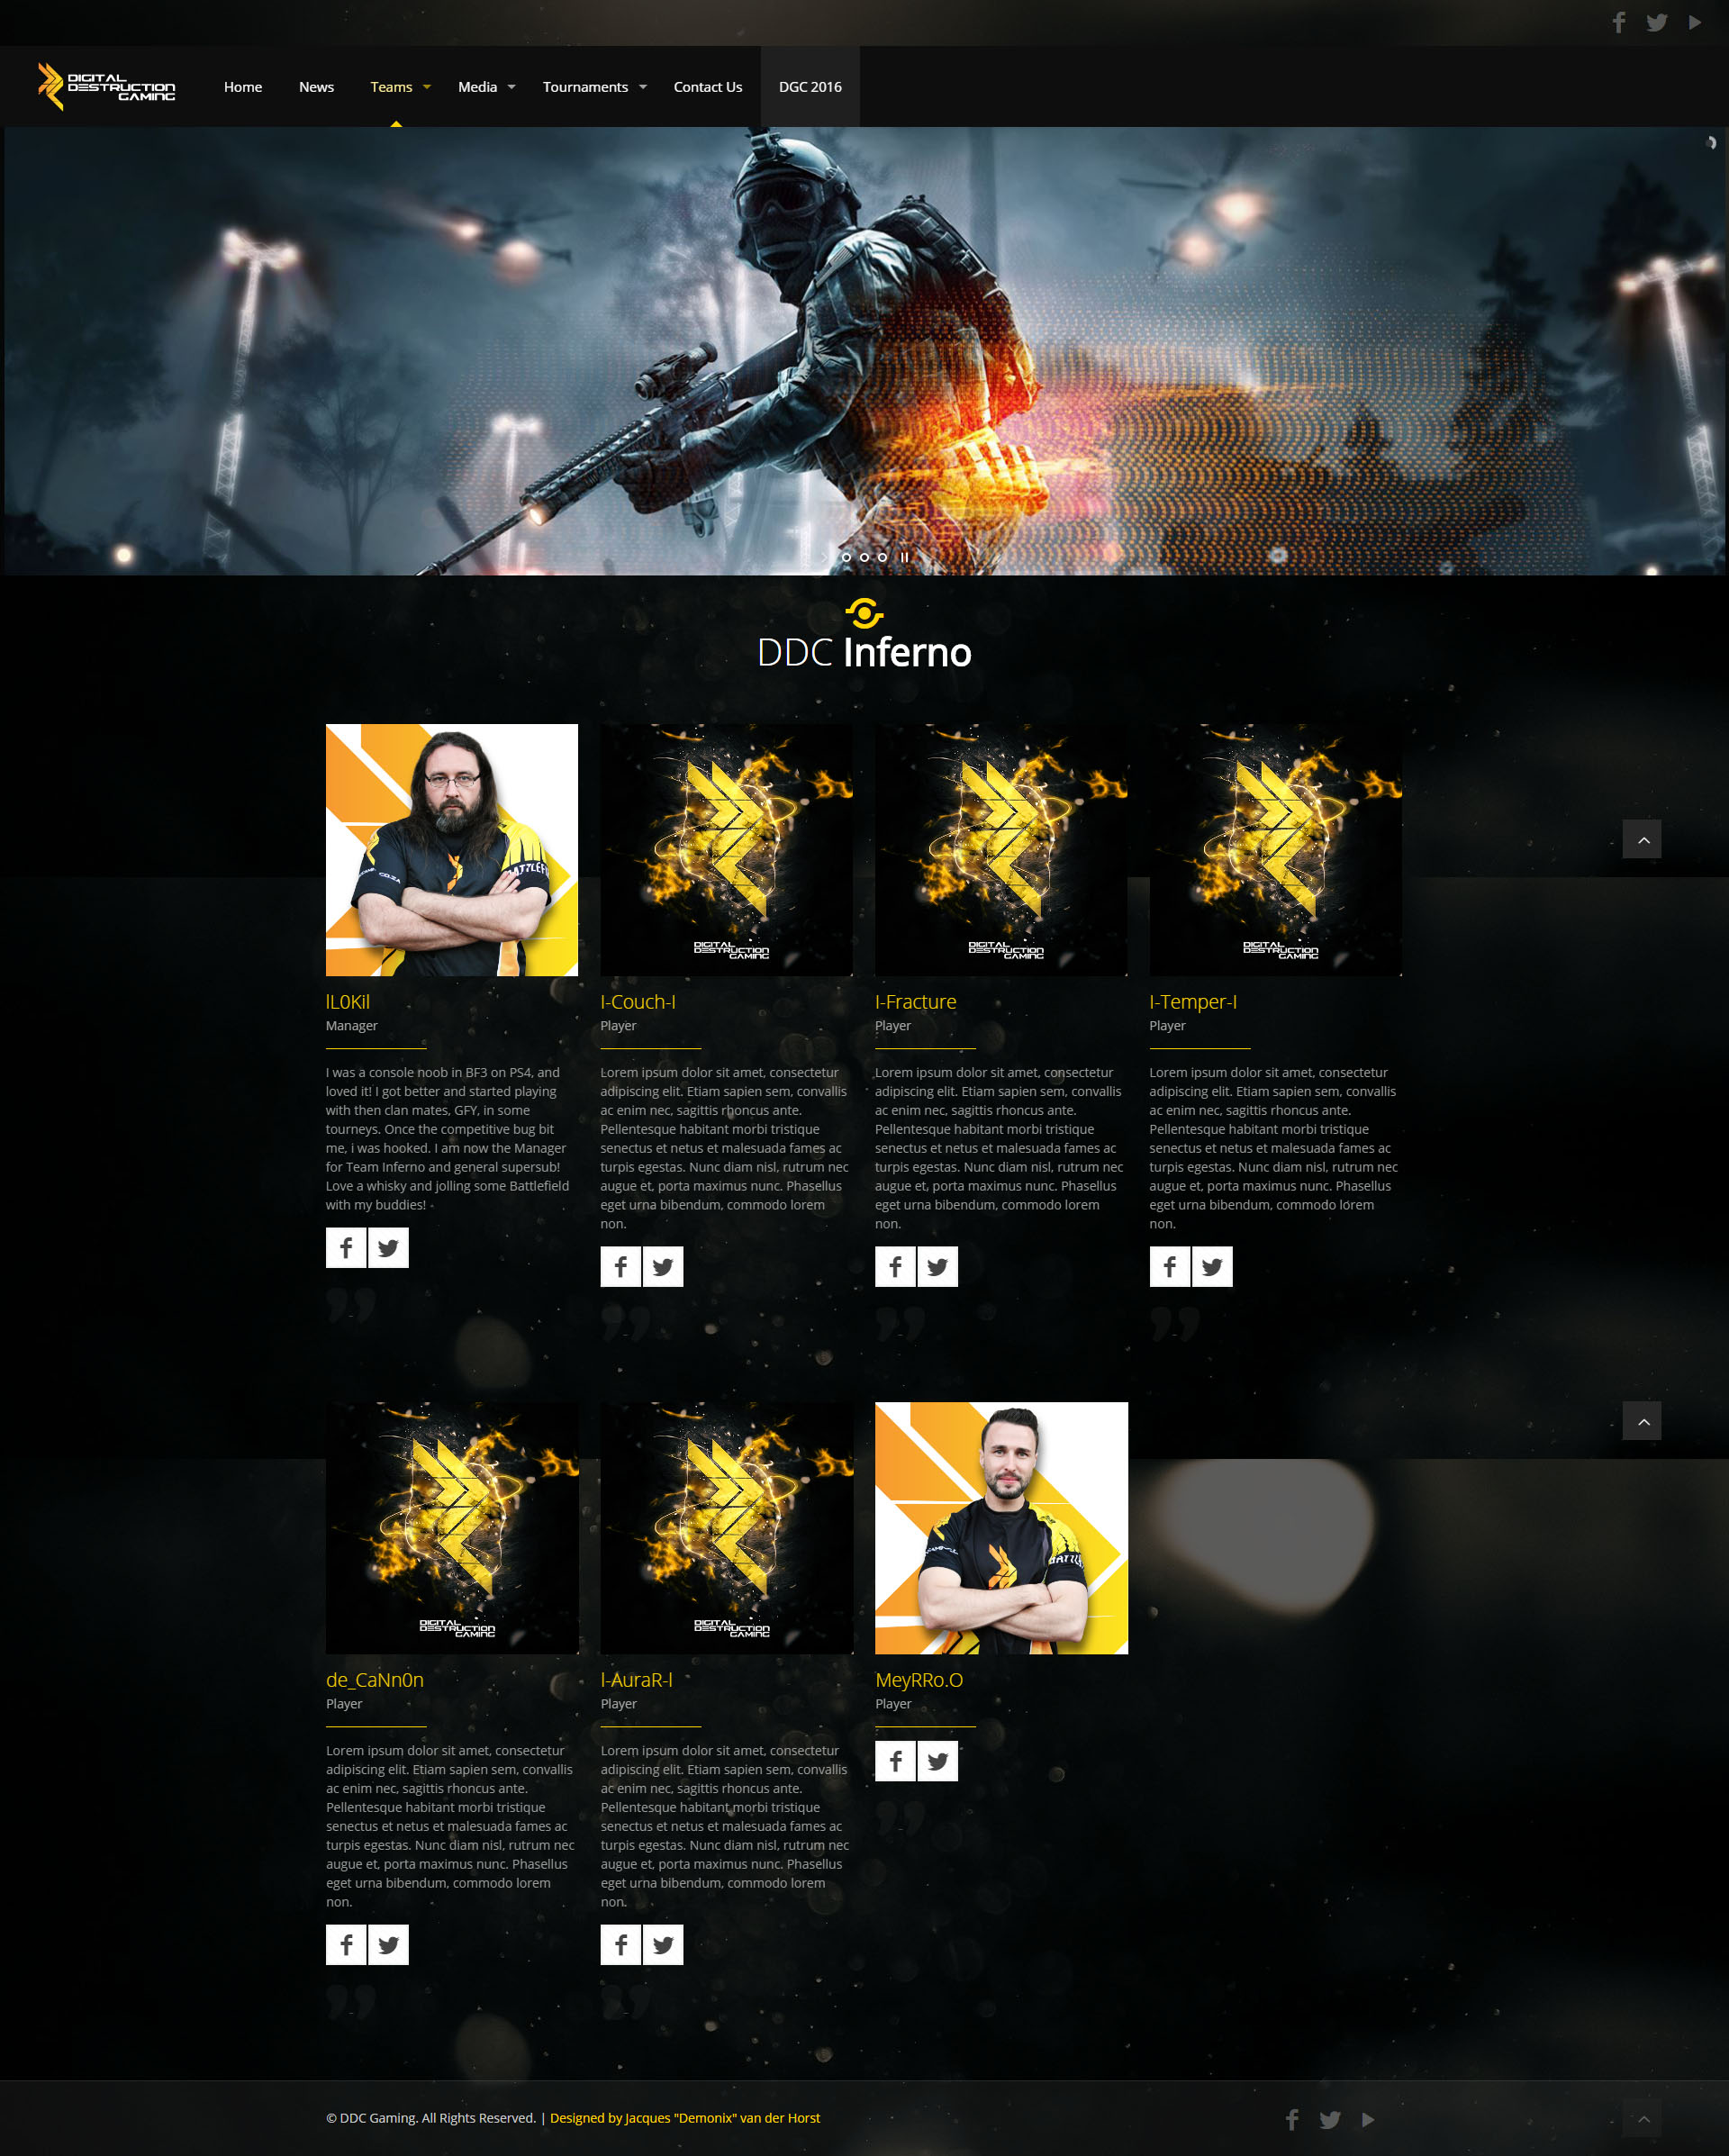 DDC Gaming Page View